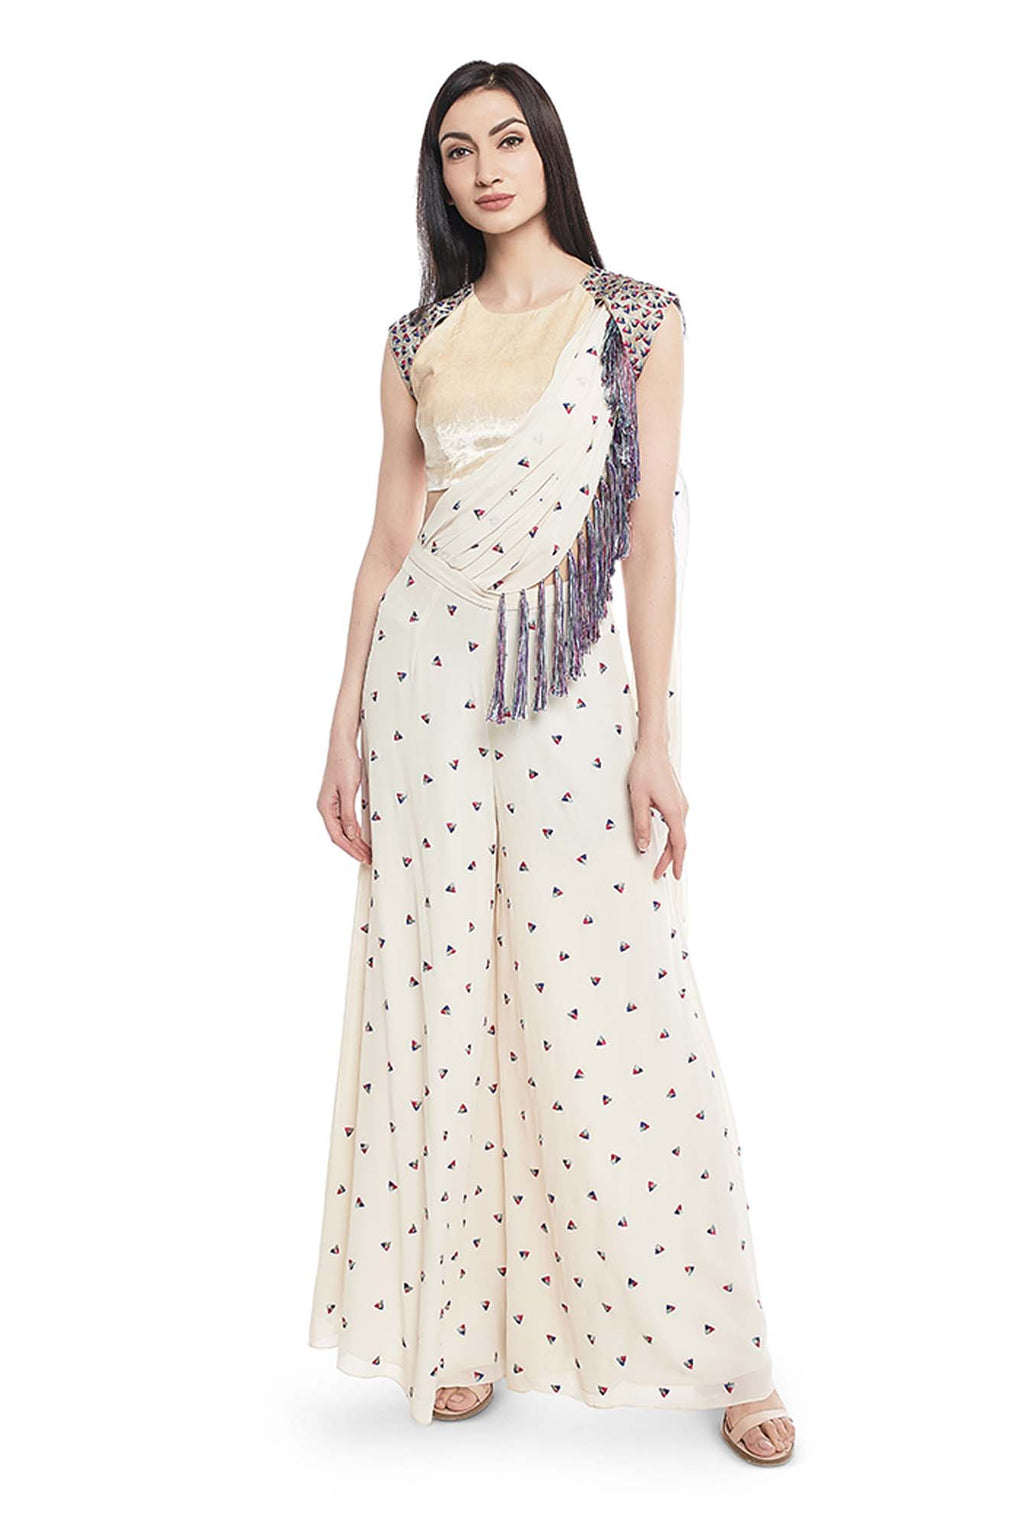 Chalk White Colour Velvet Choli and Georgette Palazzo with Attached Drape Dupatta - Riviera Closet